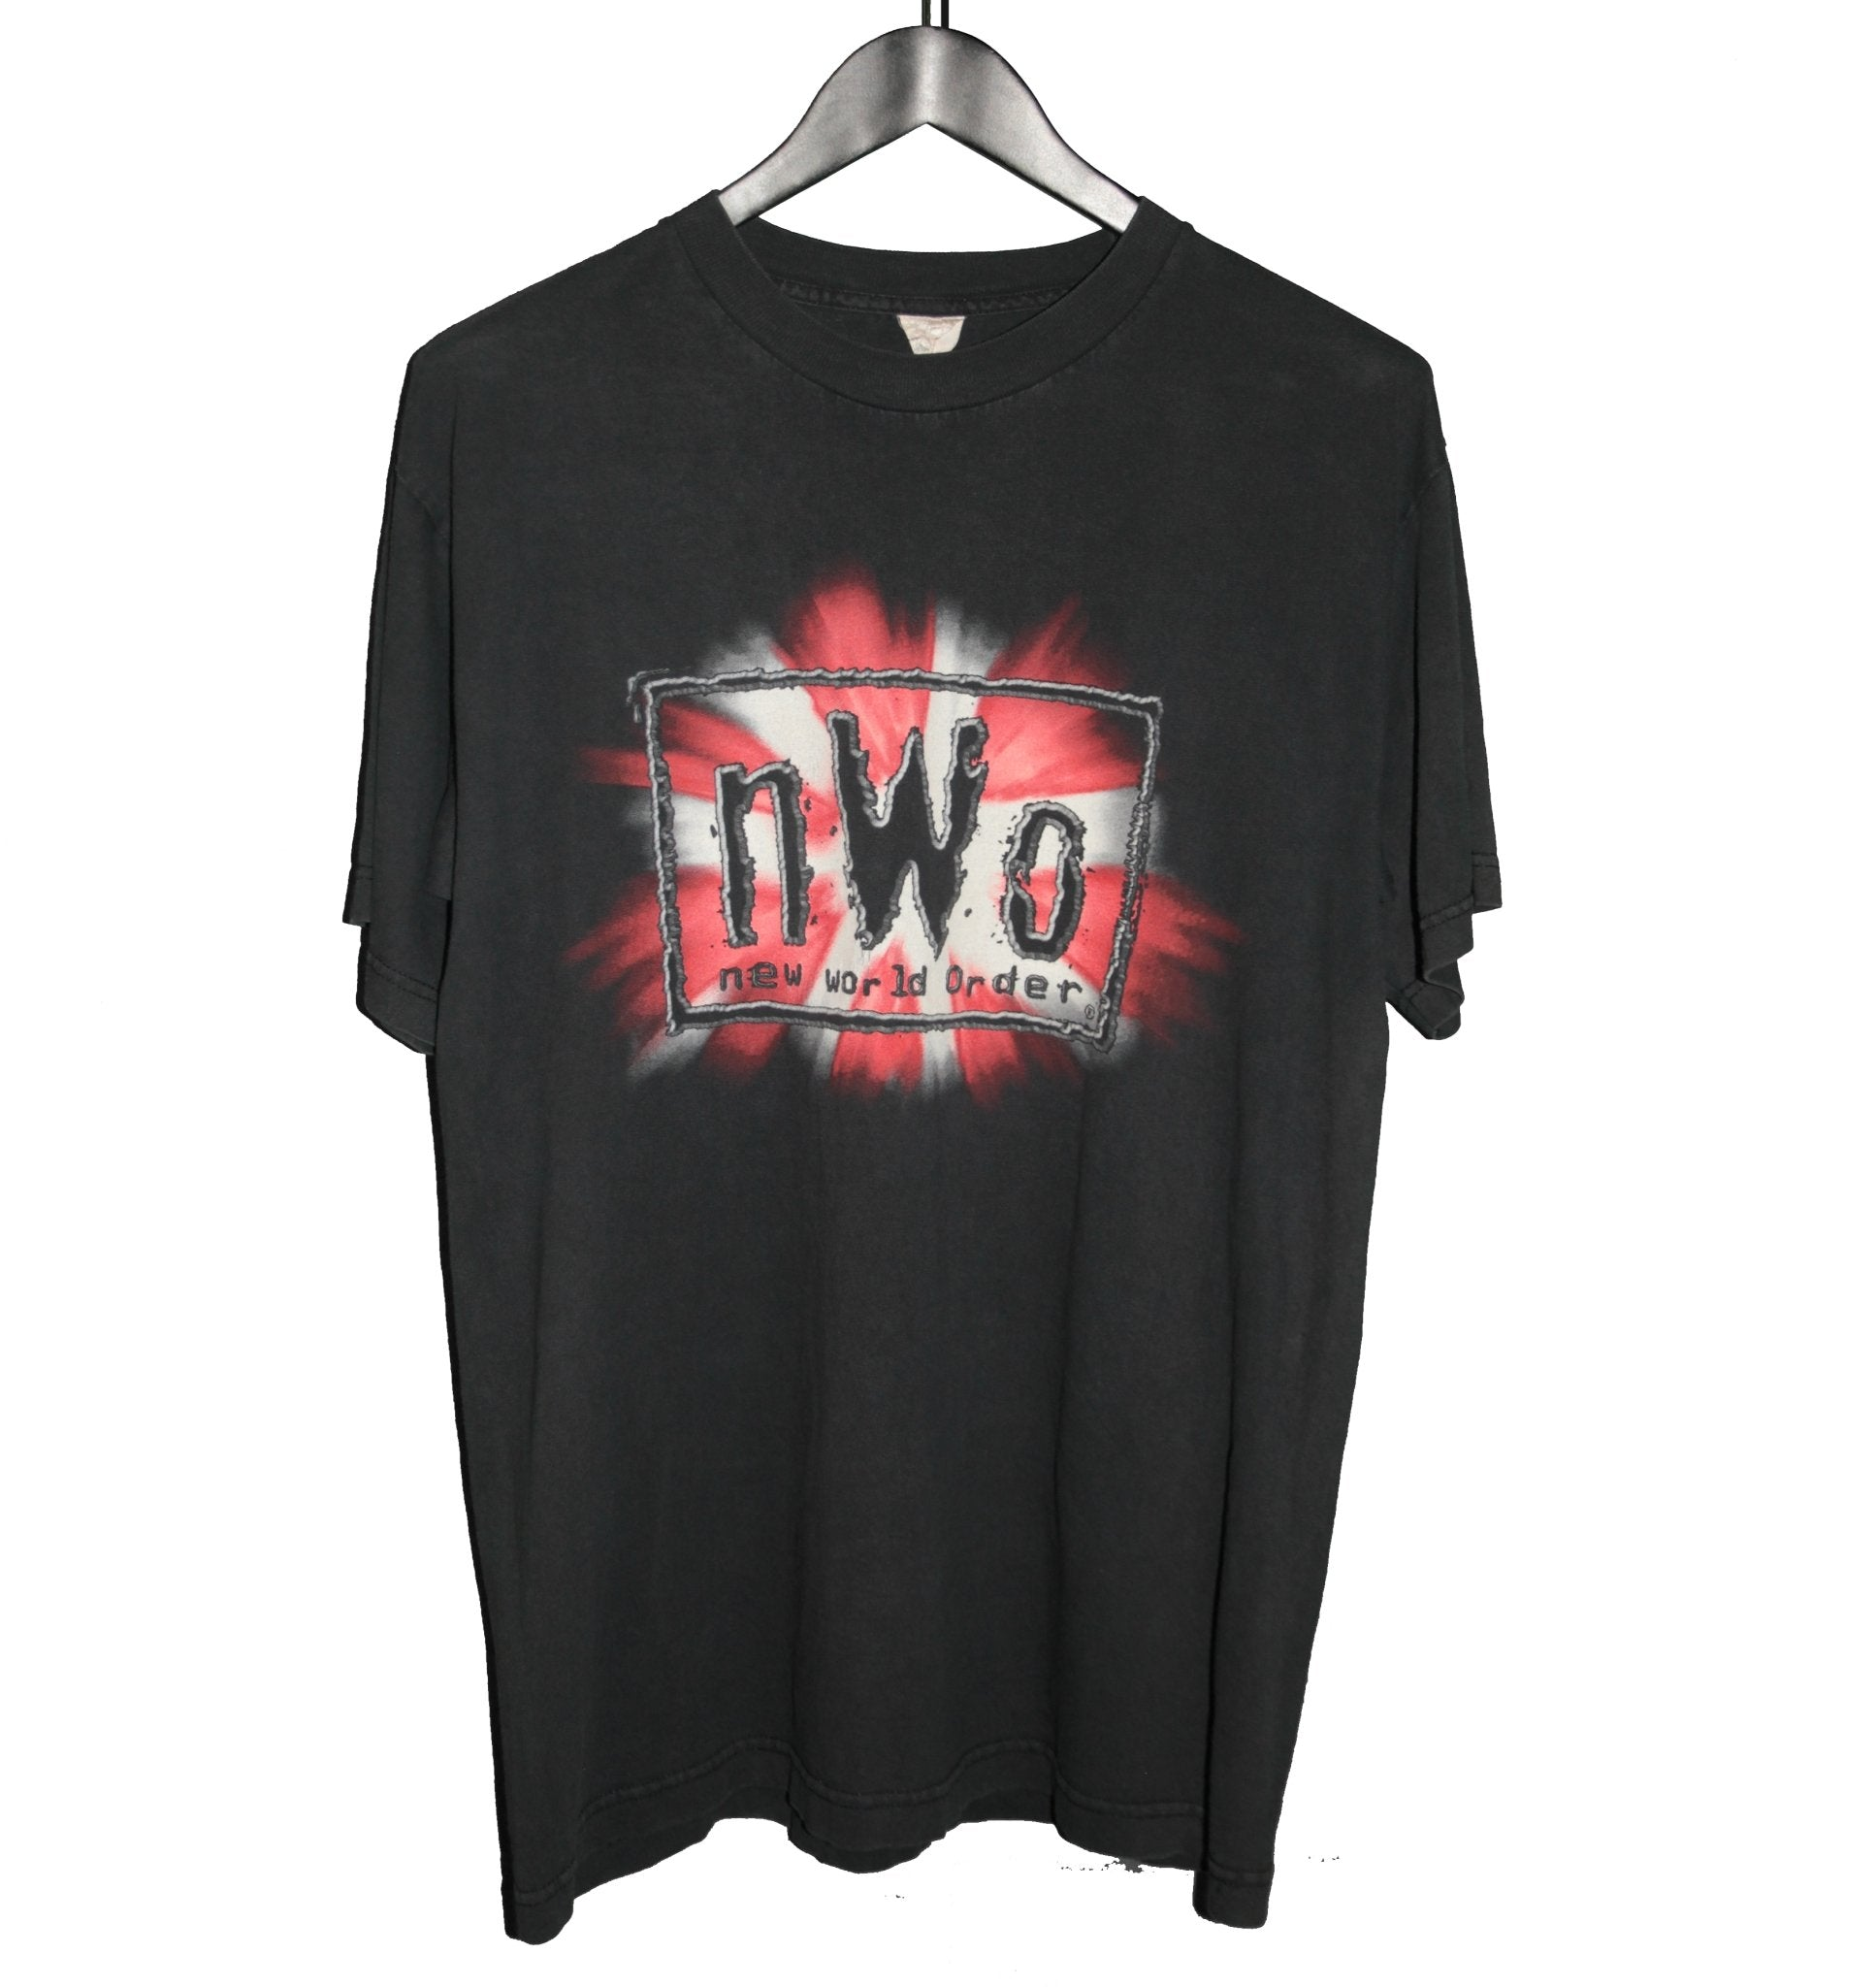 NWO 1998 Red & White Riddle Wrestling Shirt - Faded AU